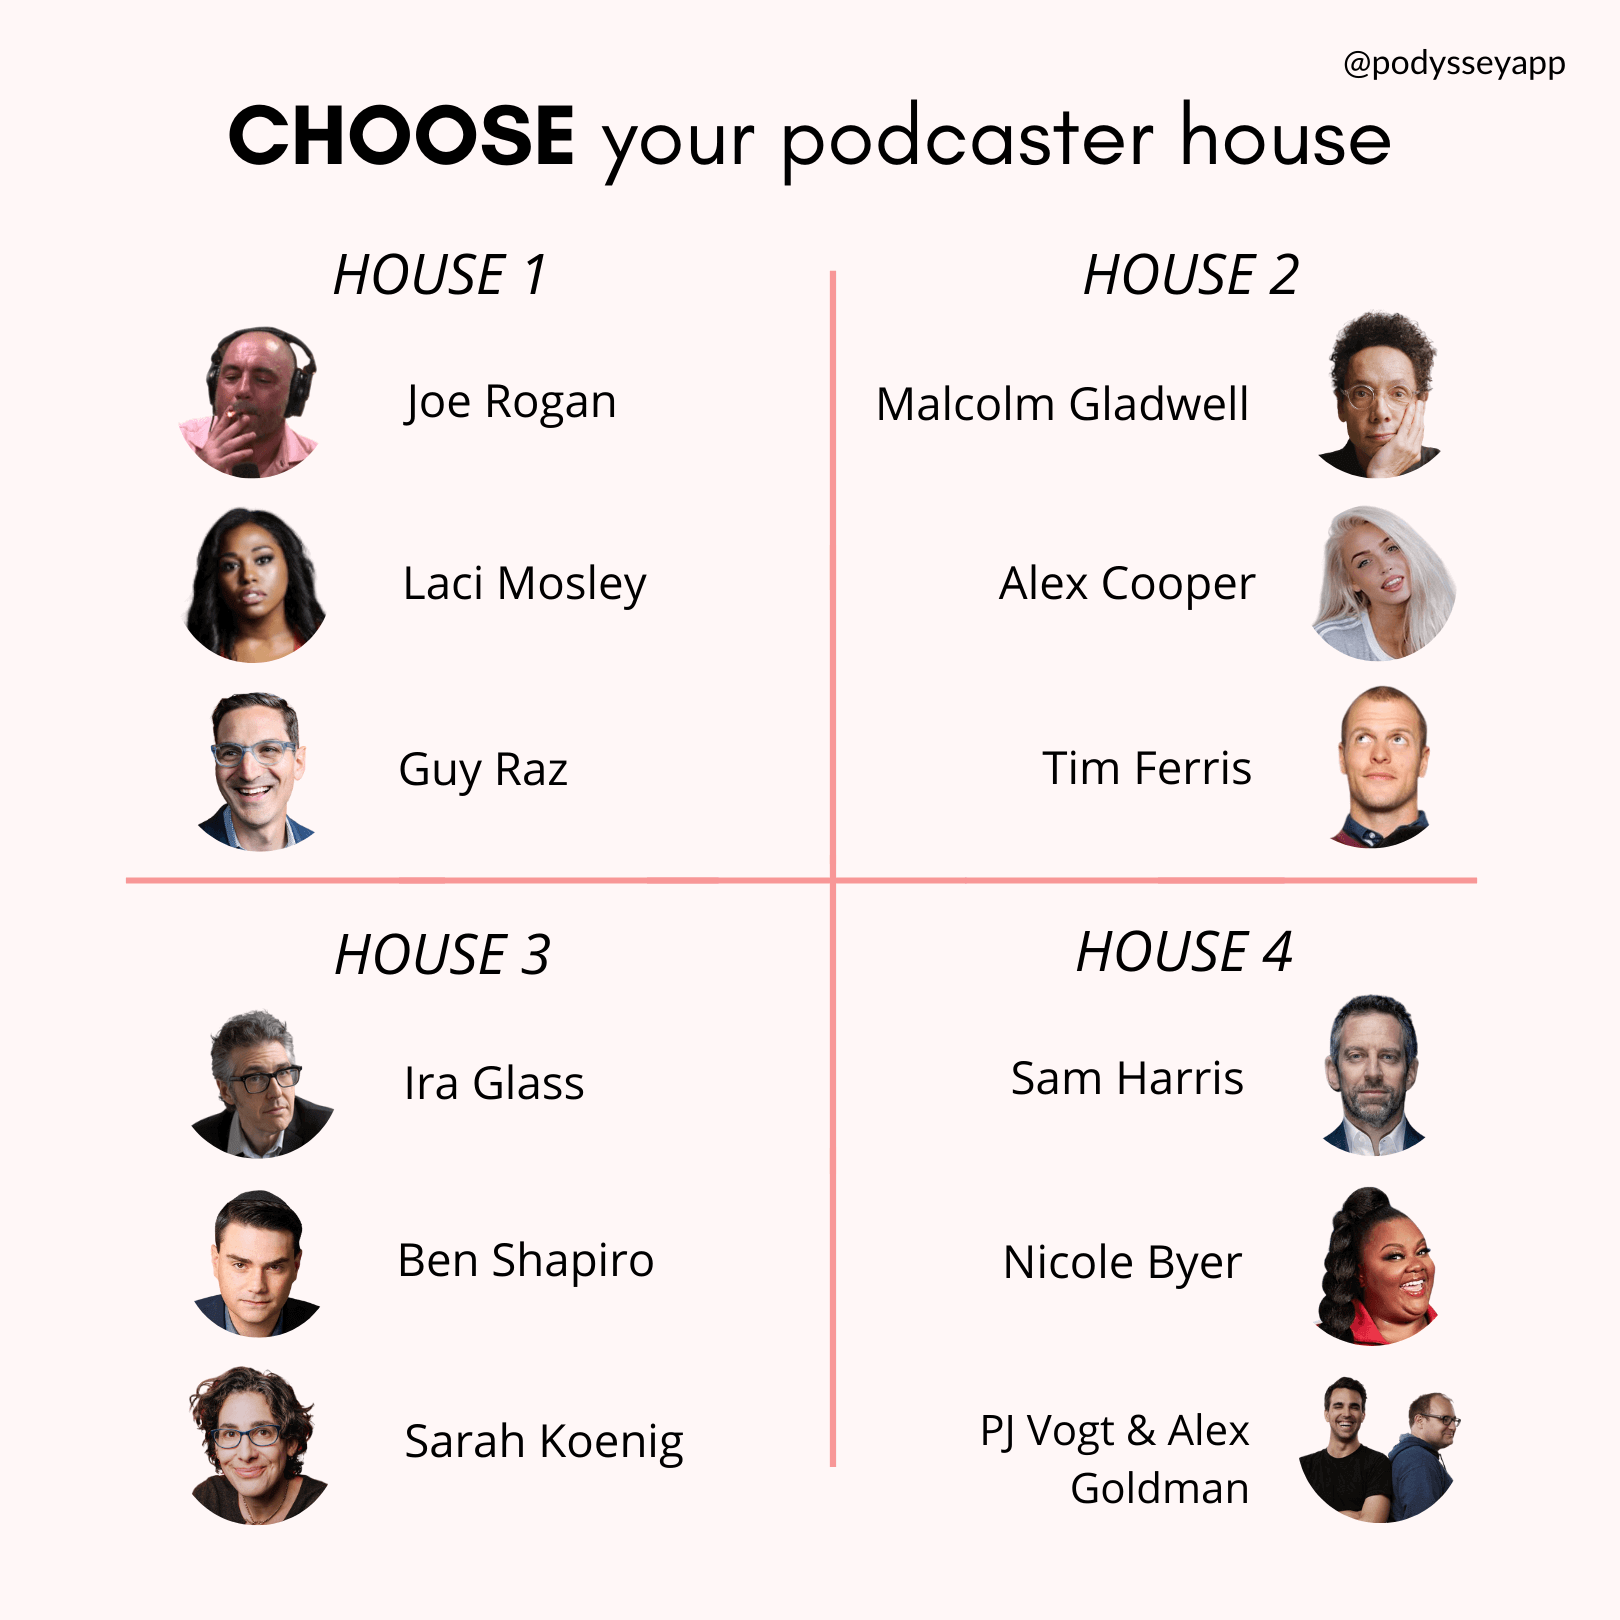 Choose your podcaster house